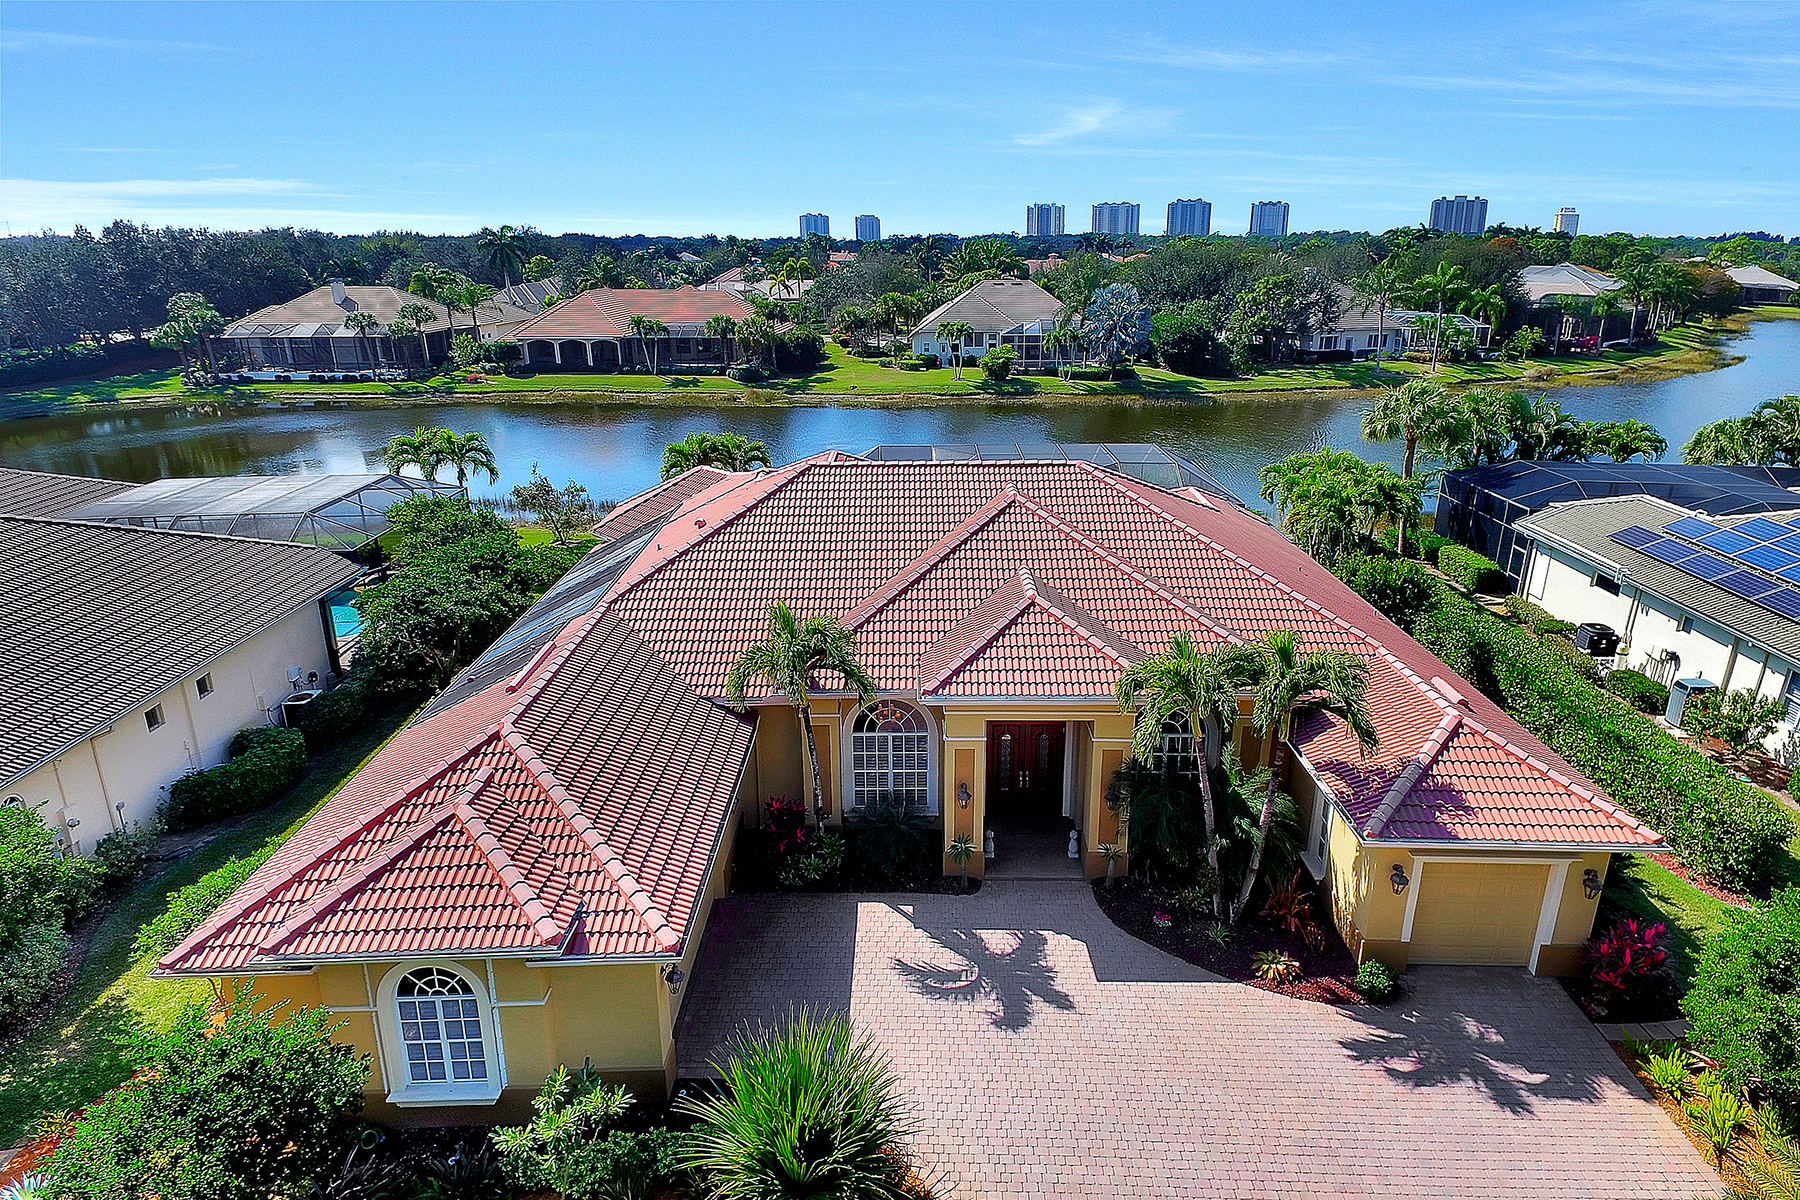 Single Family Home for Sale at PELICAN LANDING - WATERSIDE 23660 Peppermill Ct Estero, Florida, 34134 United States